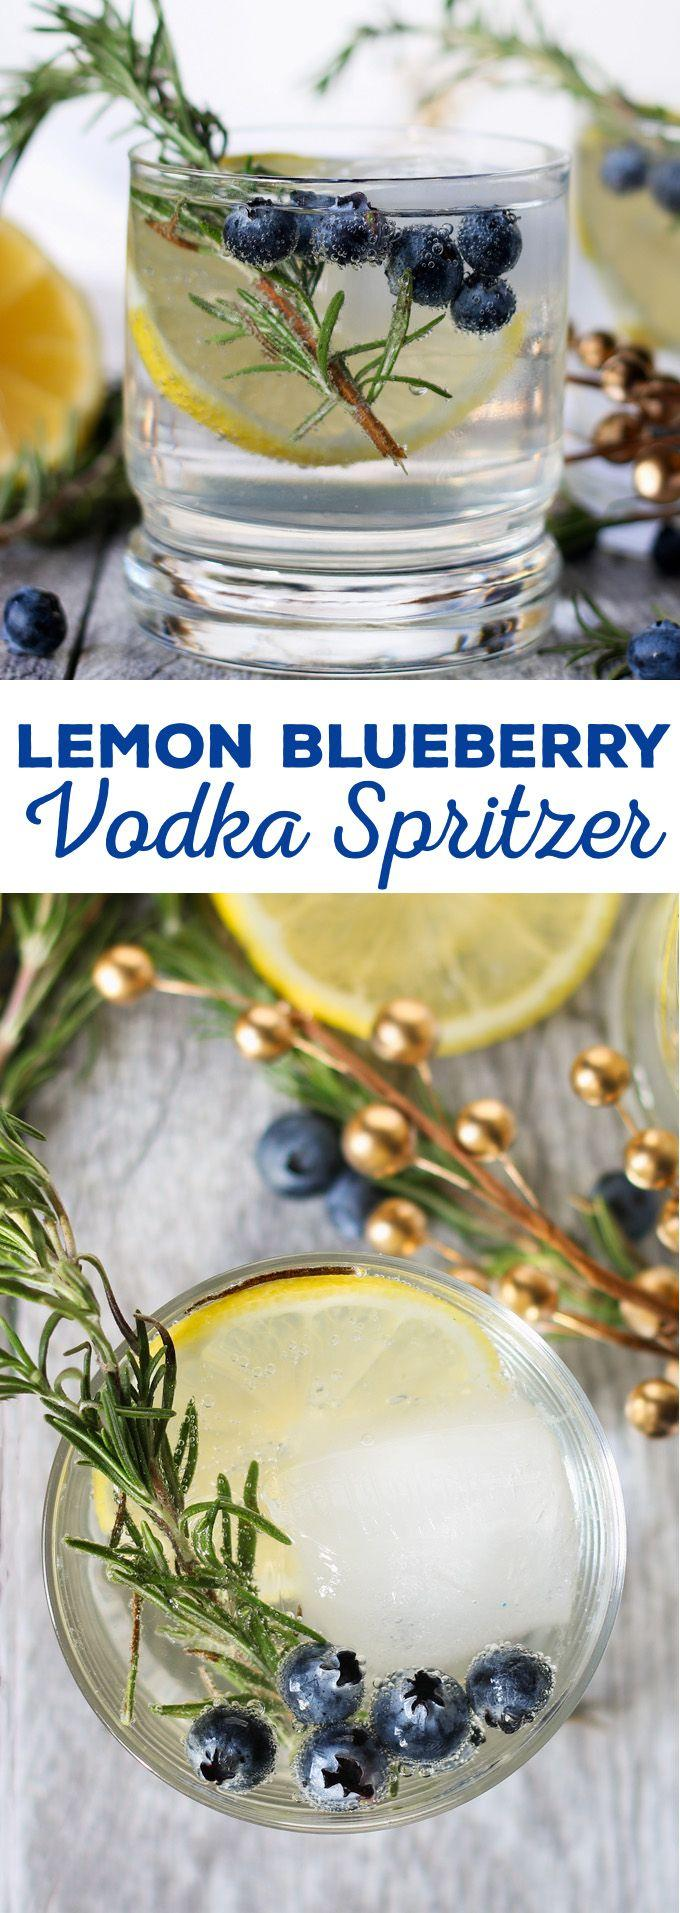 Düğün - Lemon Blueberry Vodka Spritzer